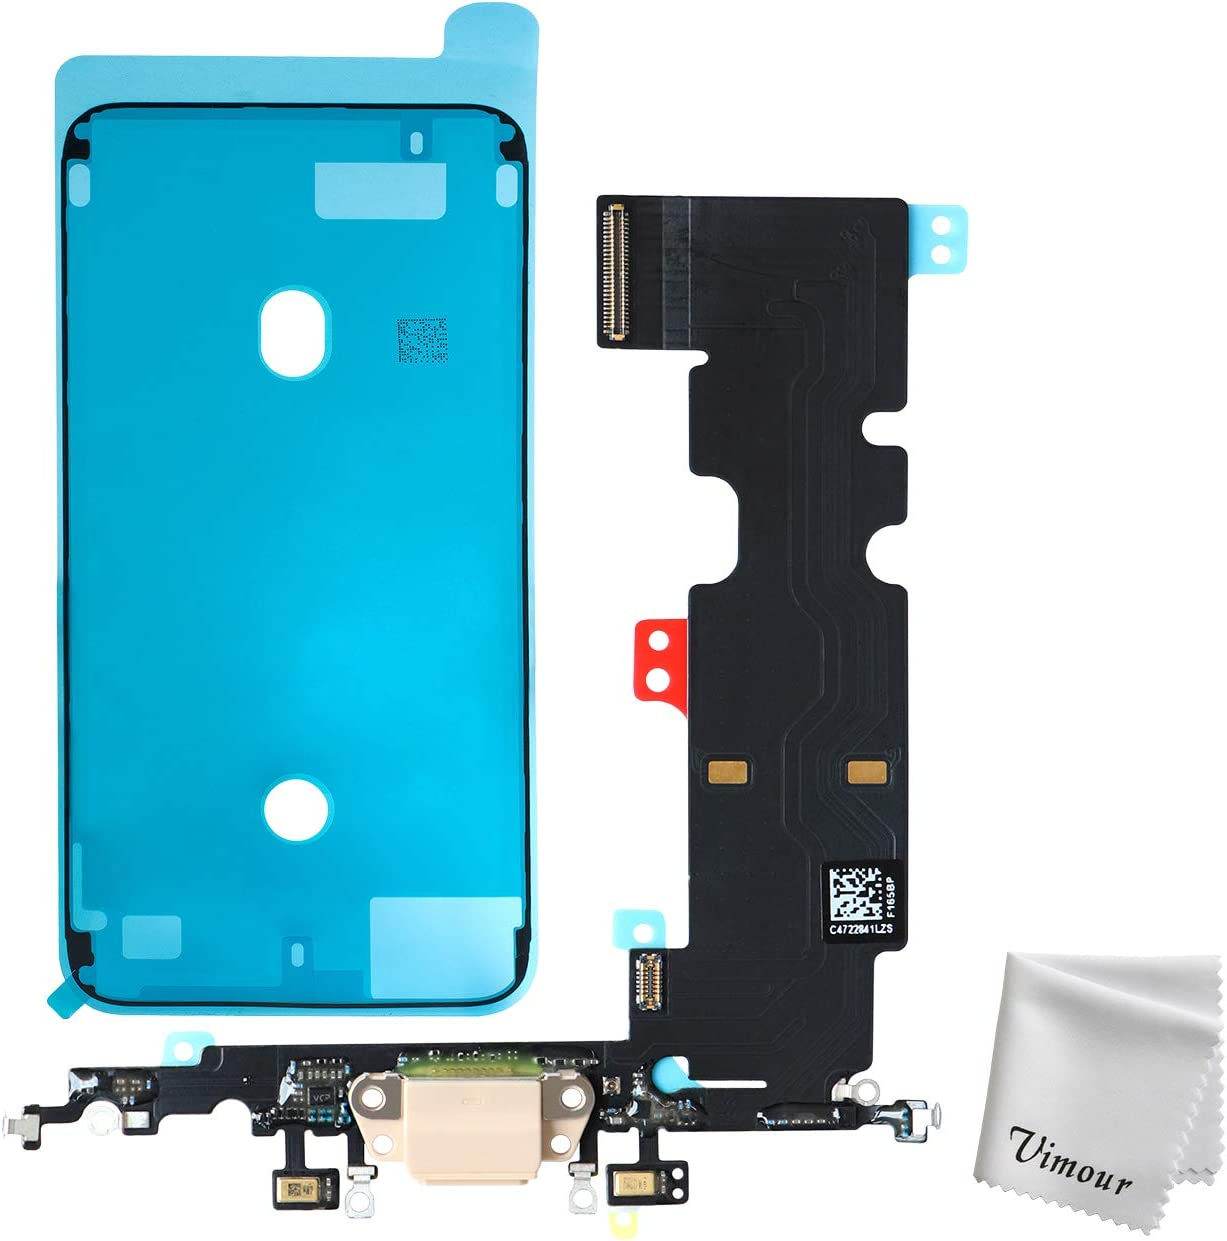 Vimour OEM USB Charging Port Dock Connector Flex Cable with Microphone Replacement for iPhone 8 Plus 5.5 Inches (Rose Gold)